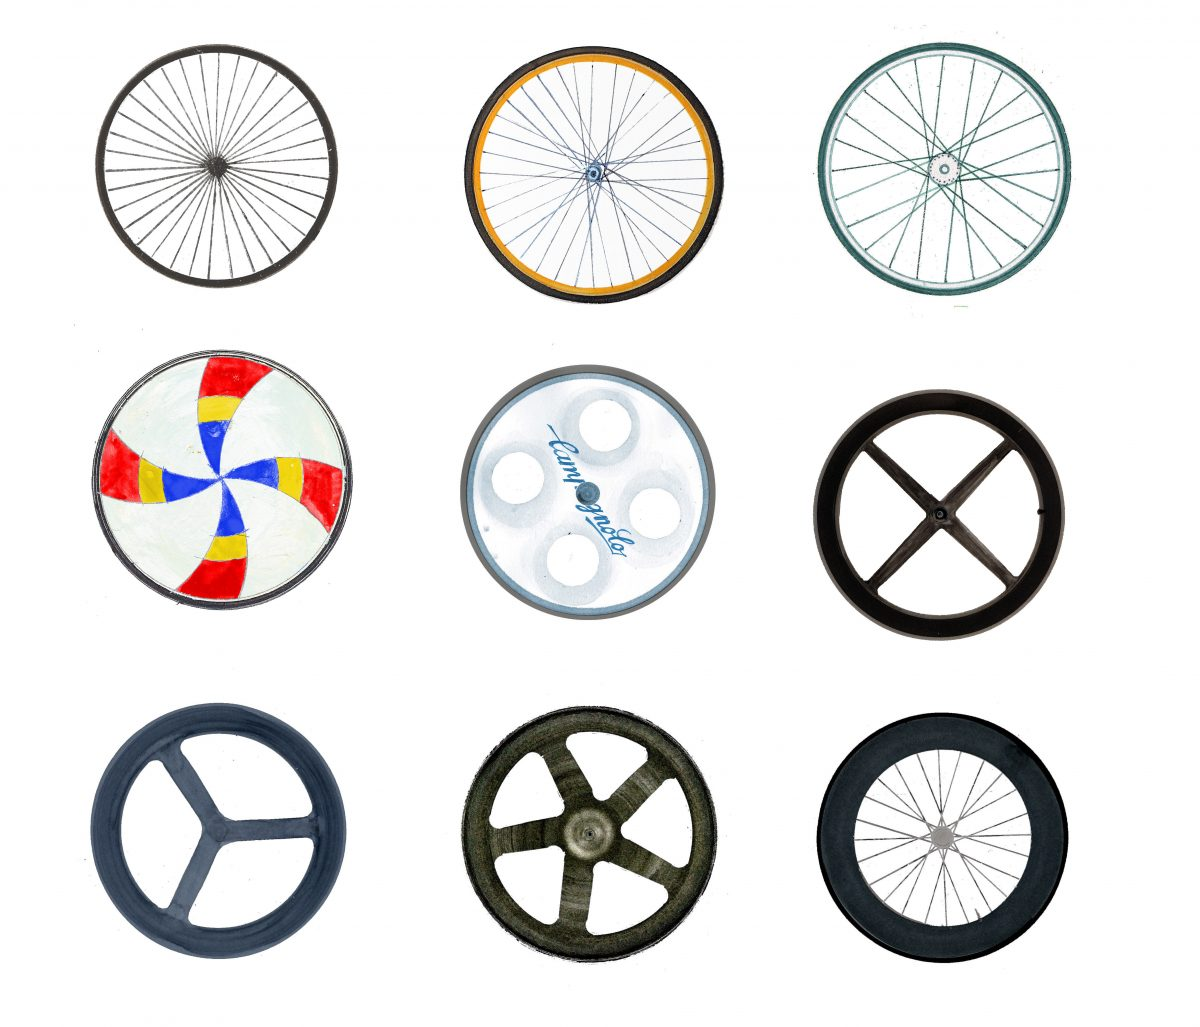 An illustrated history of aero wheels